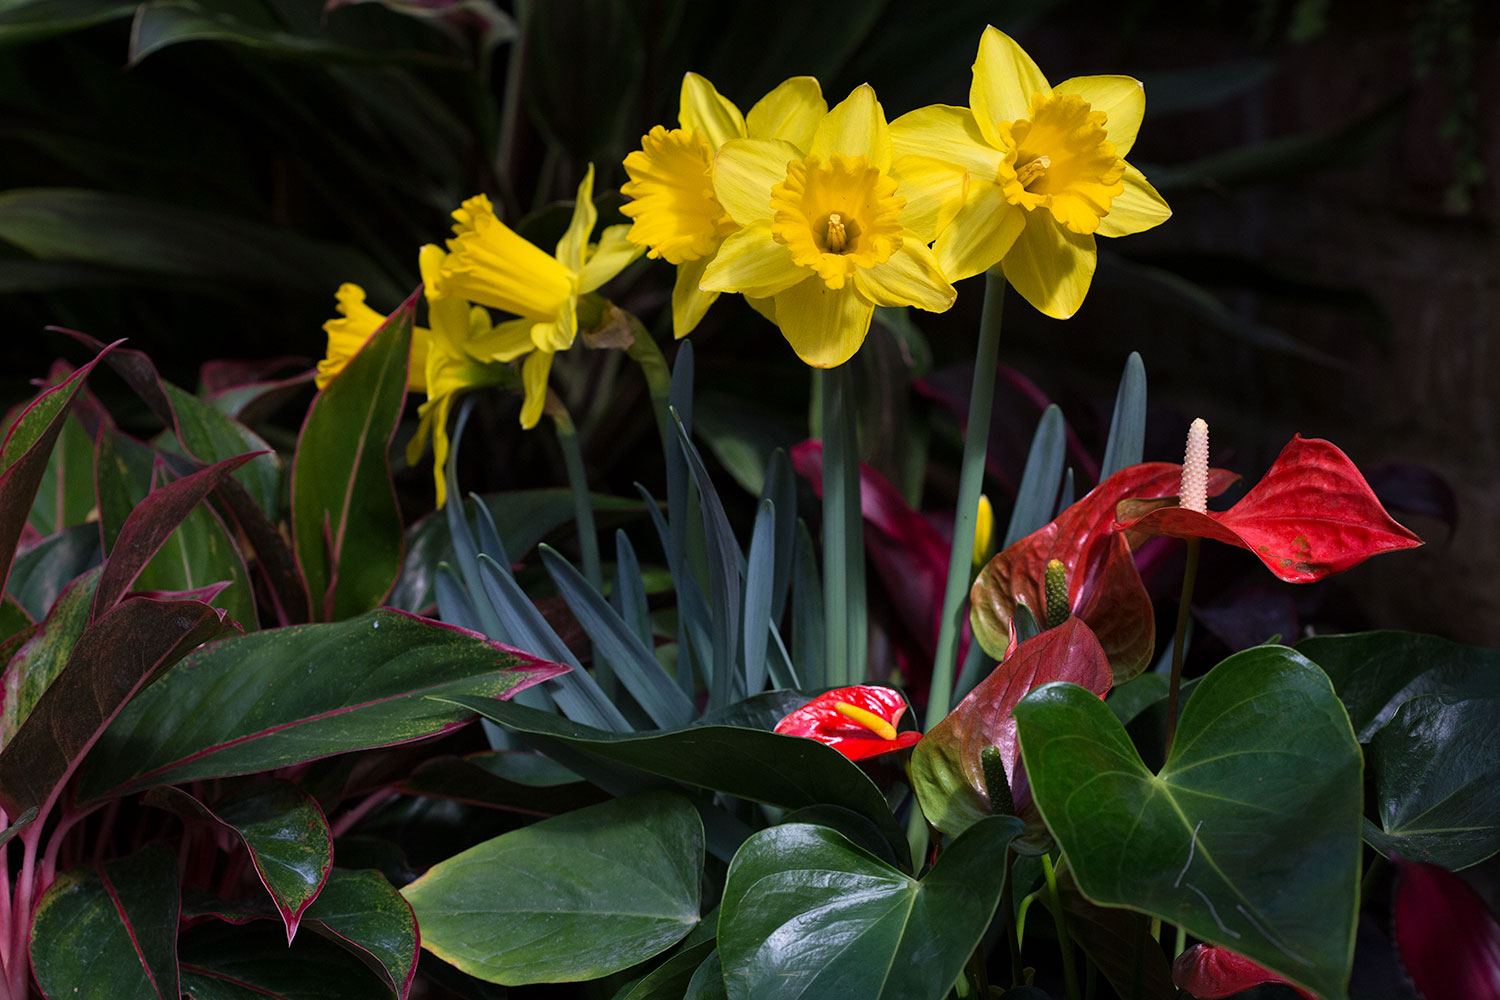 daffodils_march_2014.jpg